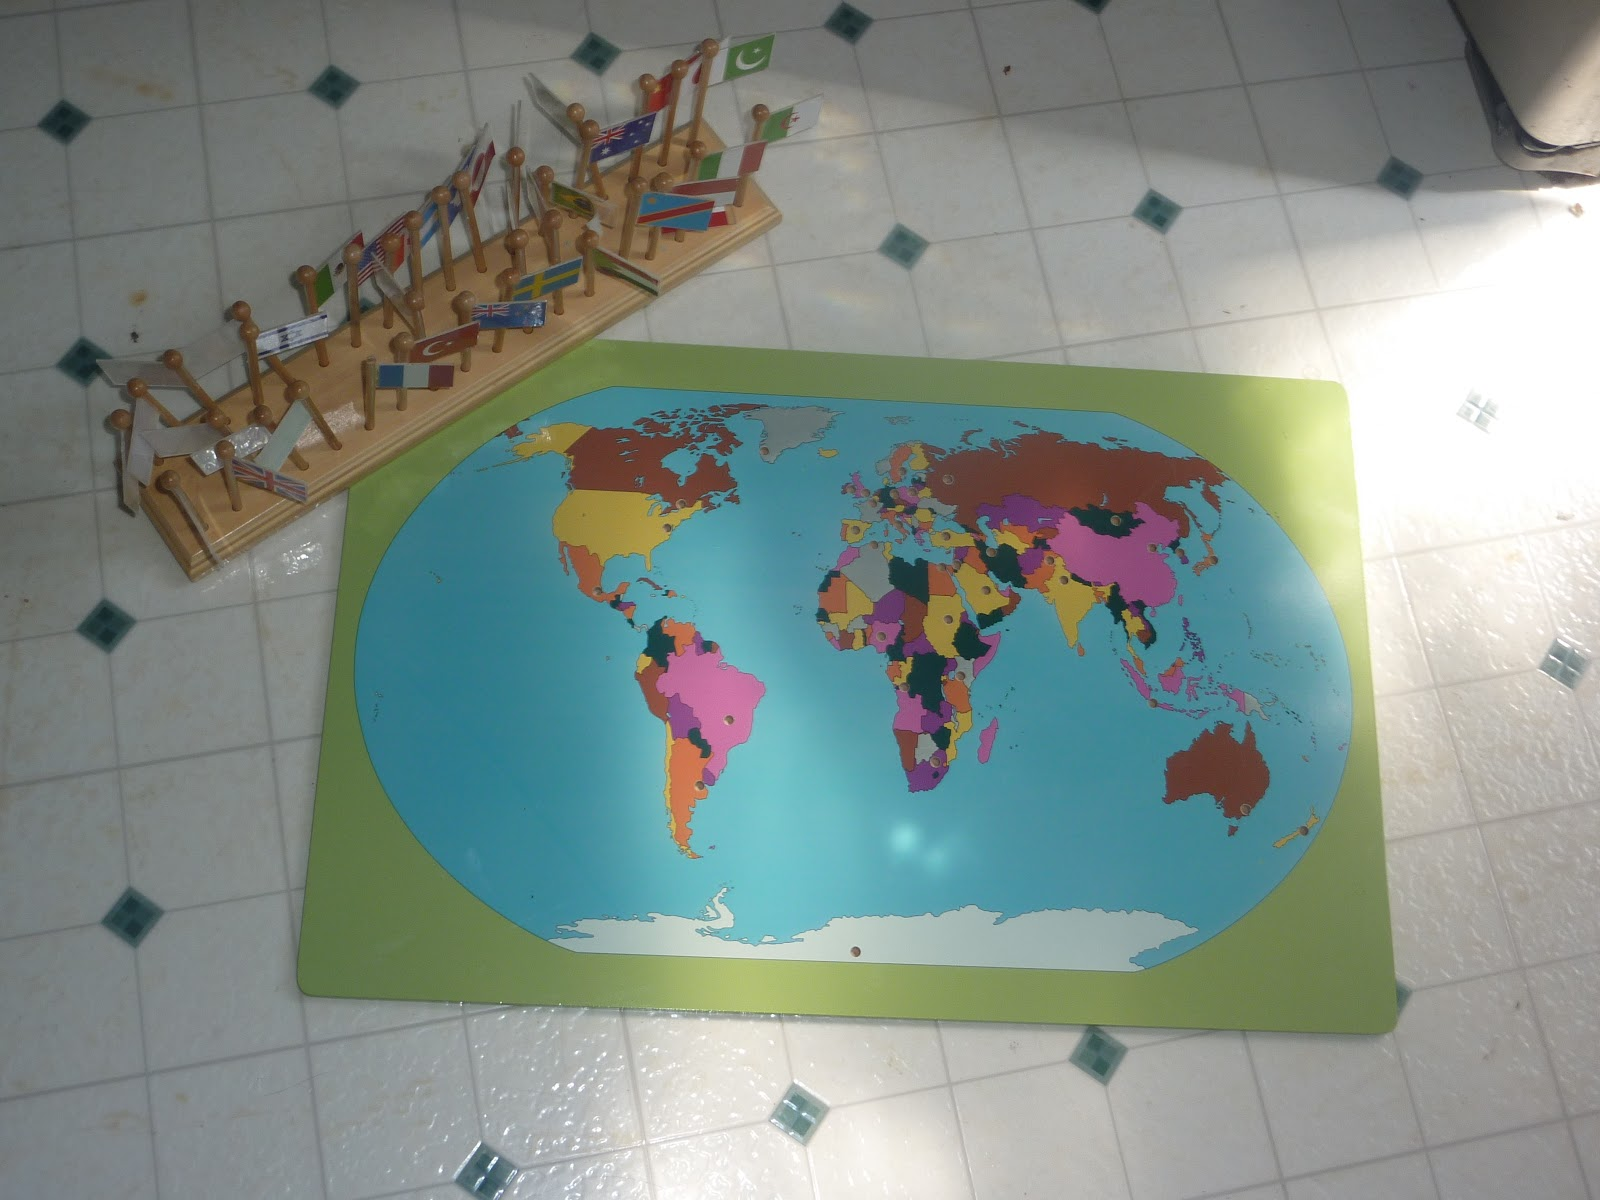 Montessori geography montessori i got it for 24 but i dont see it on clearance on their site any more but there is lots of great stuff on clearance on their site gumiabroncs Choice Image